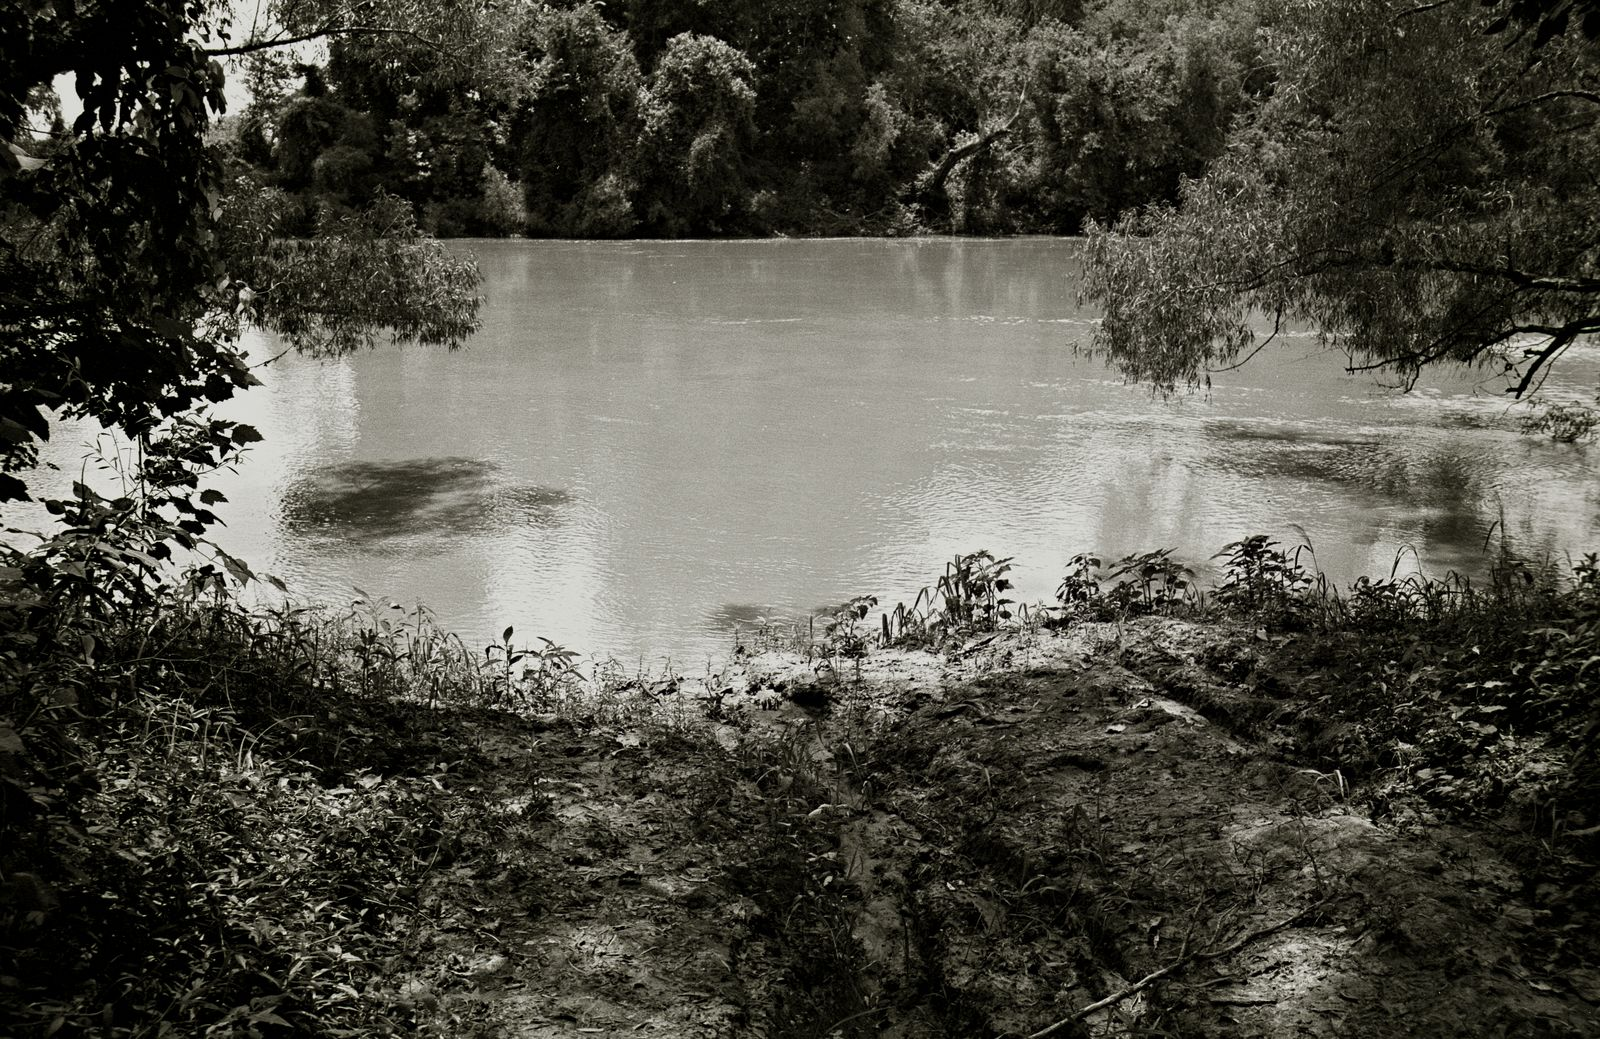 Emmett Till - Body Found in the Tallahatchie River